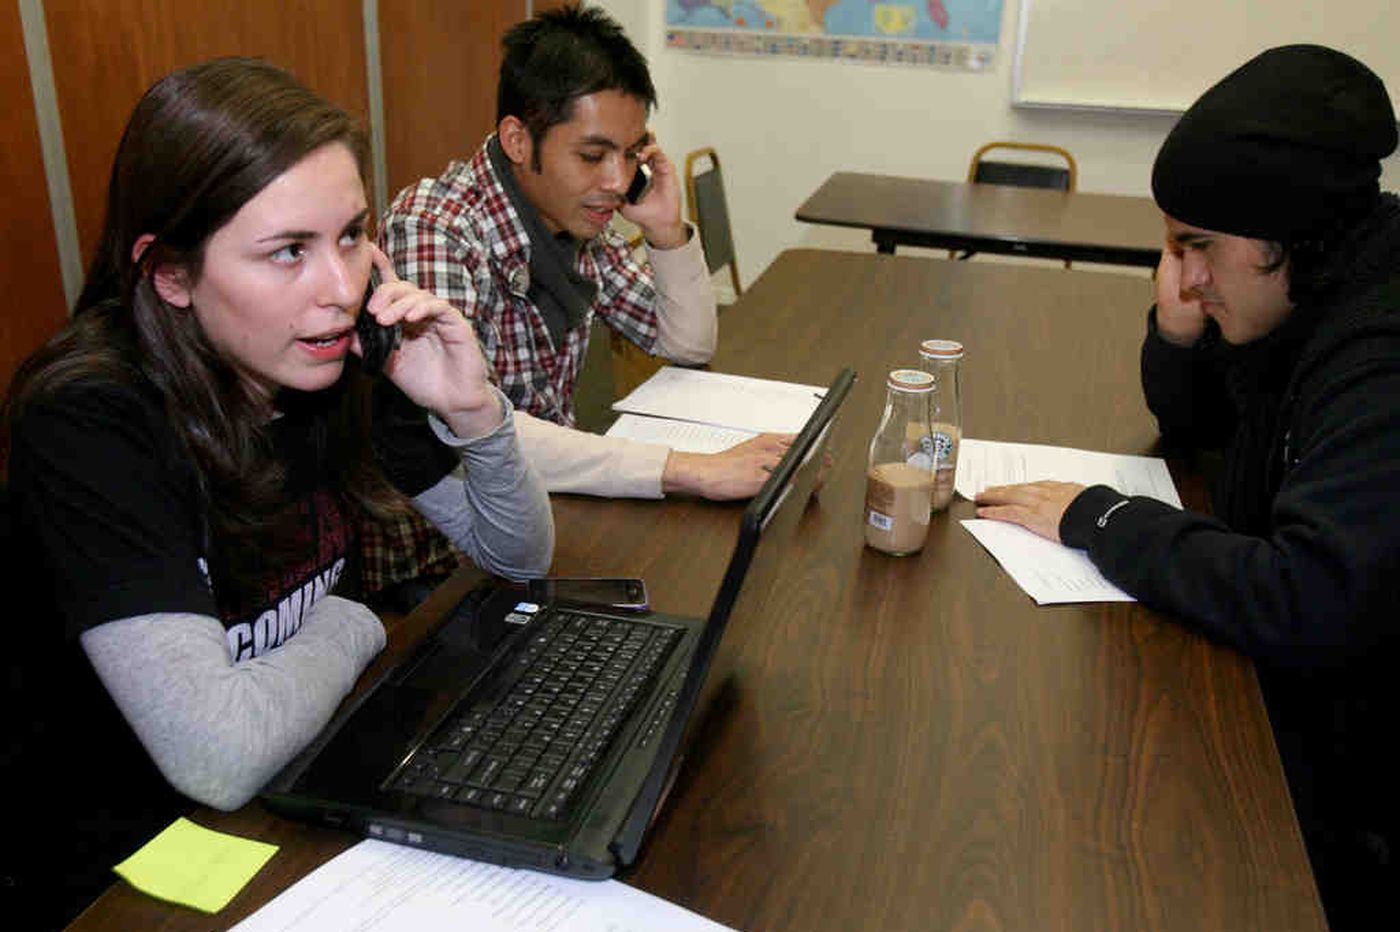 Philadelphia phone bank urges passage of immigration law